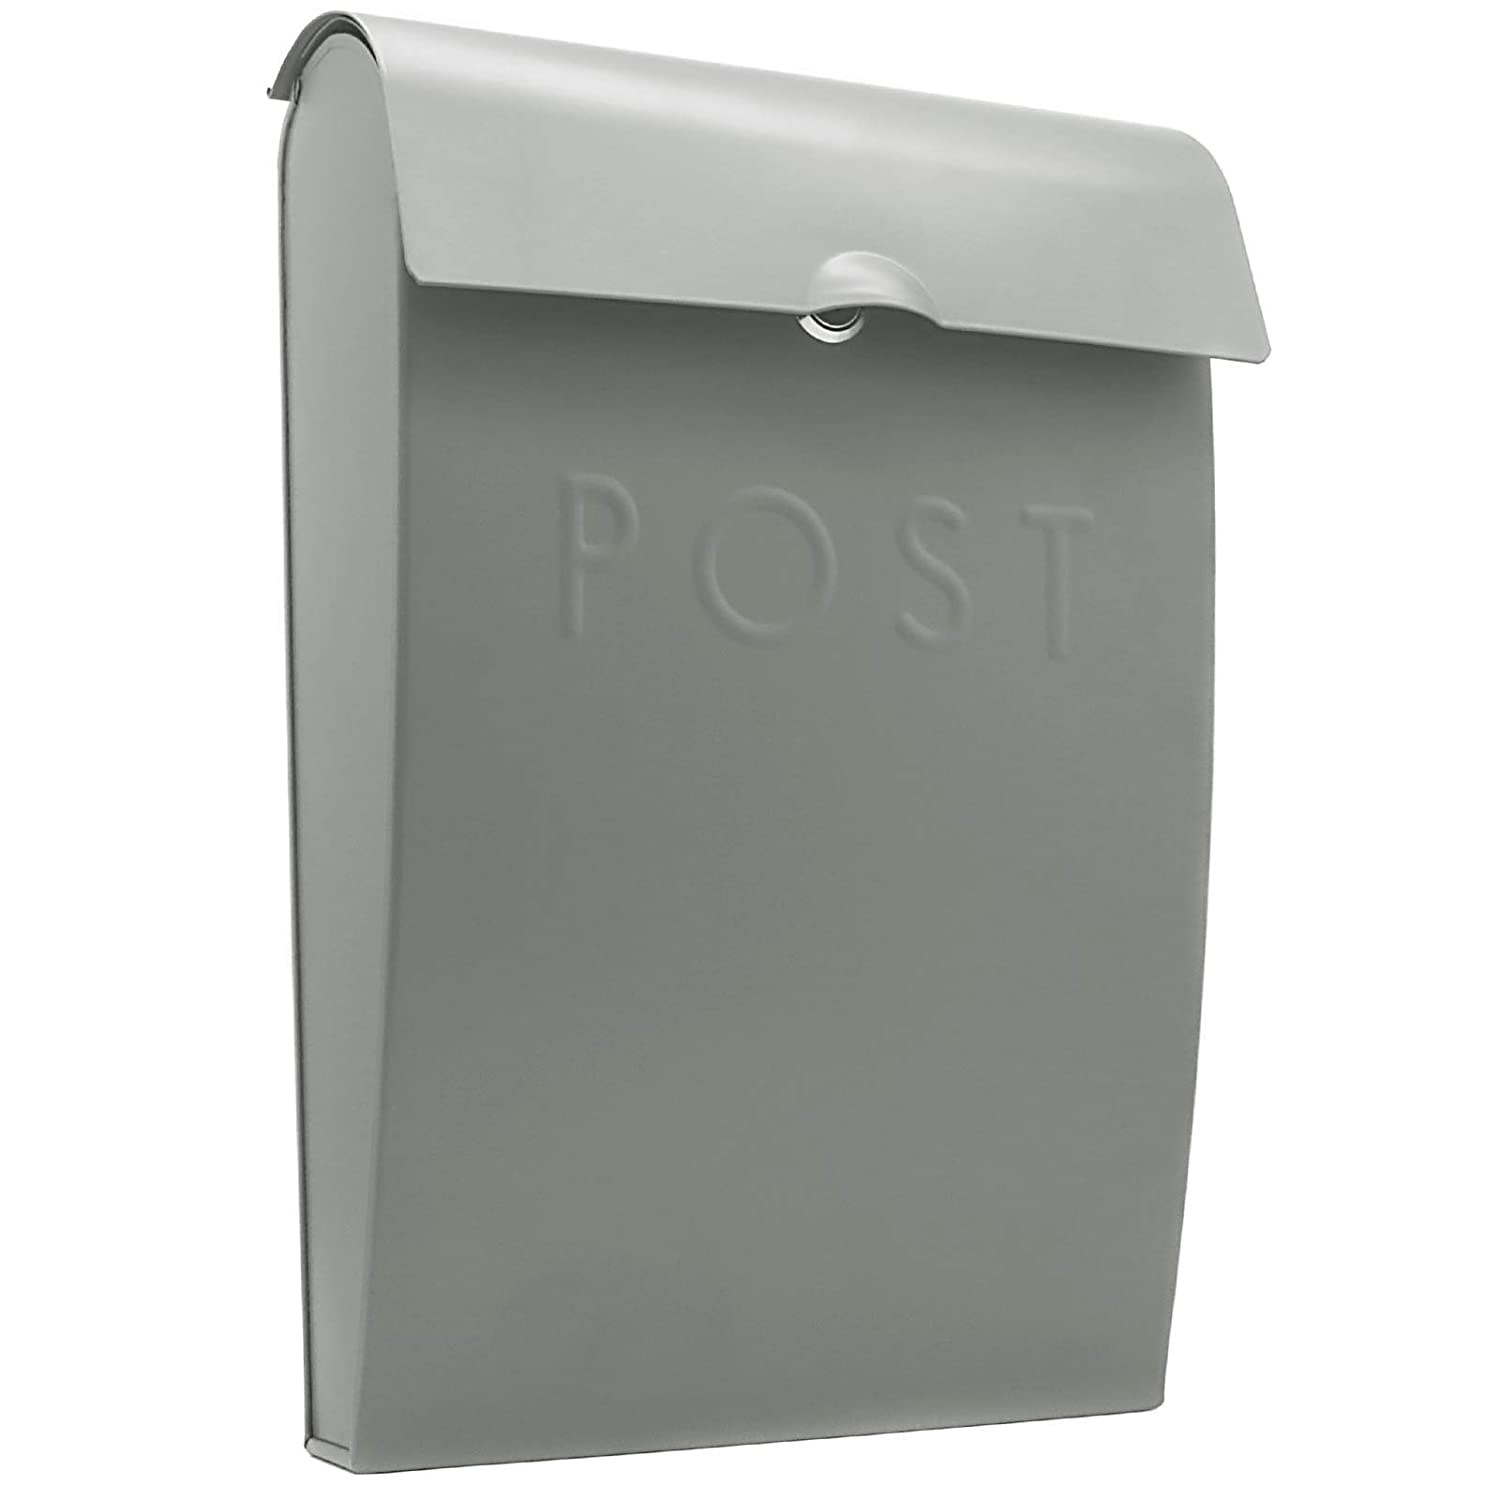 Wall Mounted Post Box | Galvanised Steel Outdoor Mailbox | Lockable Weatherproof Outside Postbox | M&W (Grey) Xbite